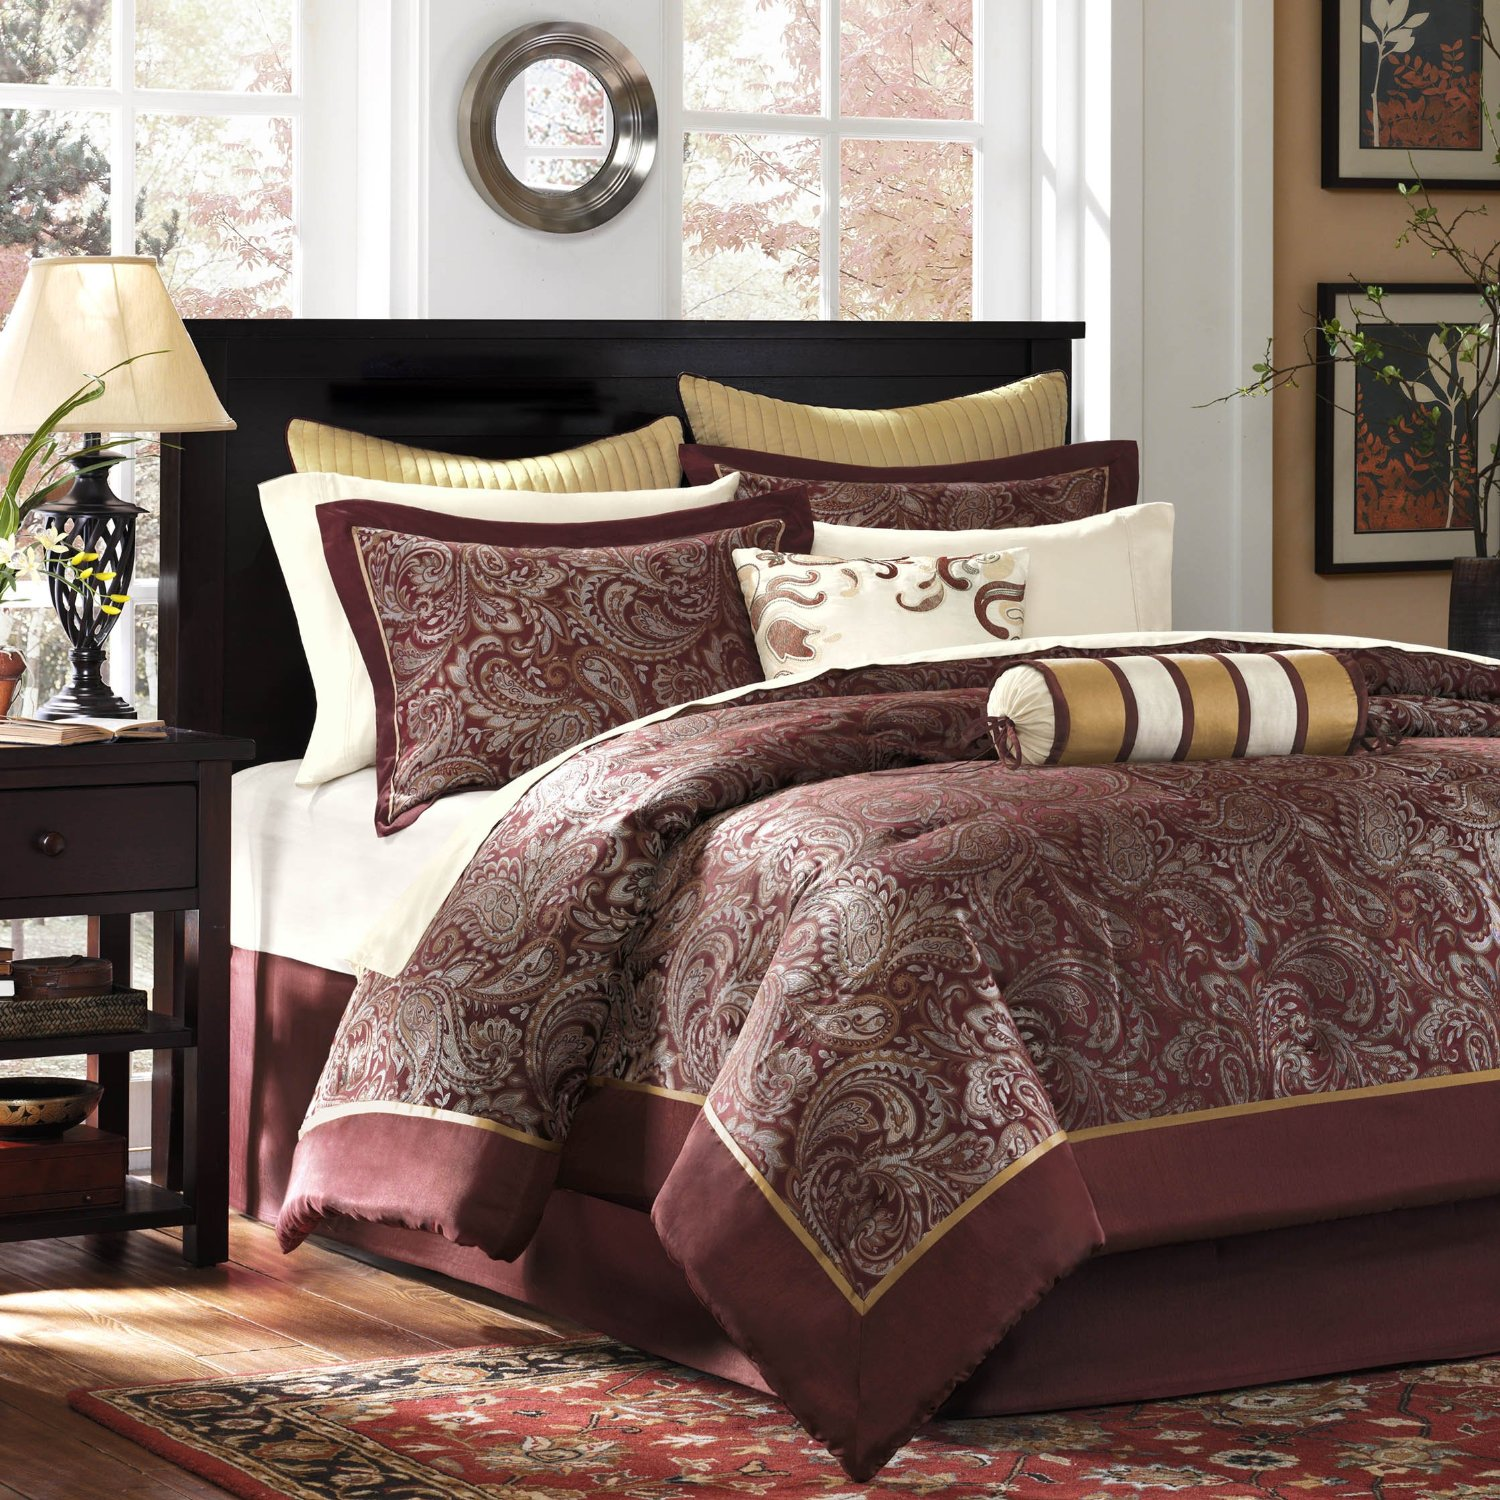 Burgundy comforter bedding sets - Bedroom sheets and comforter sets ...